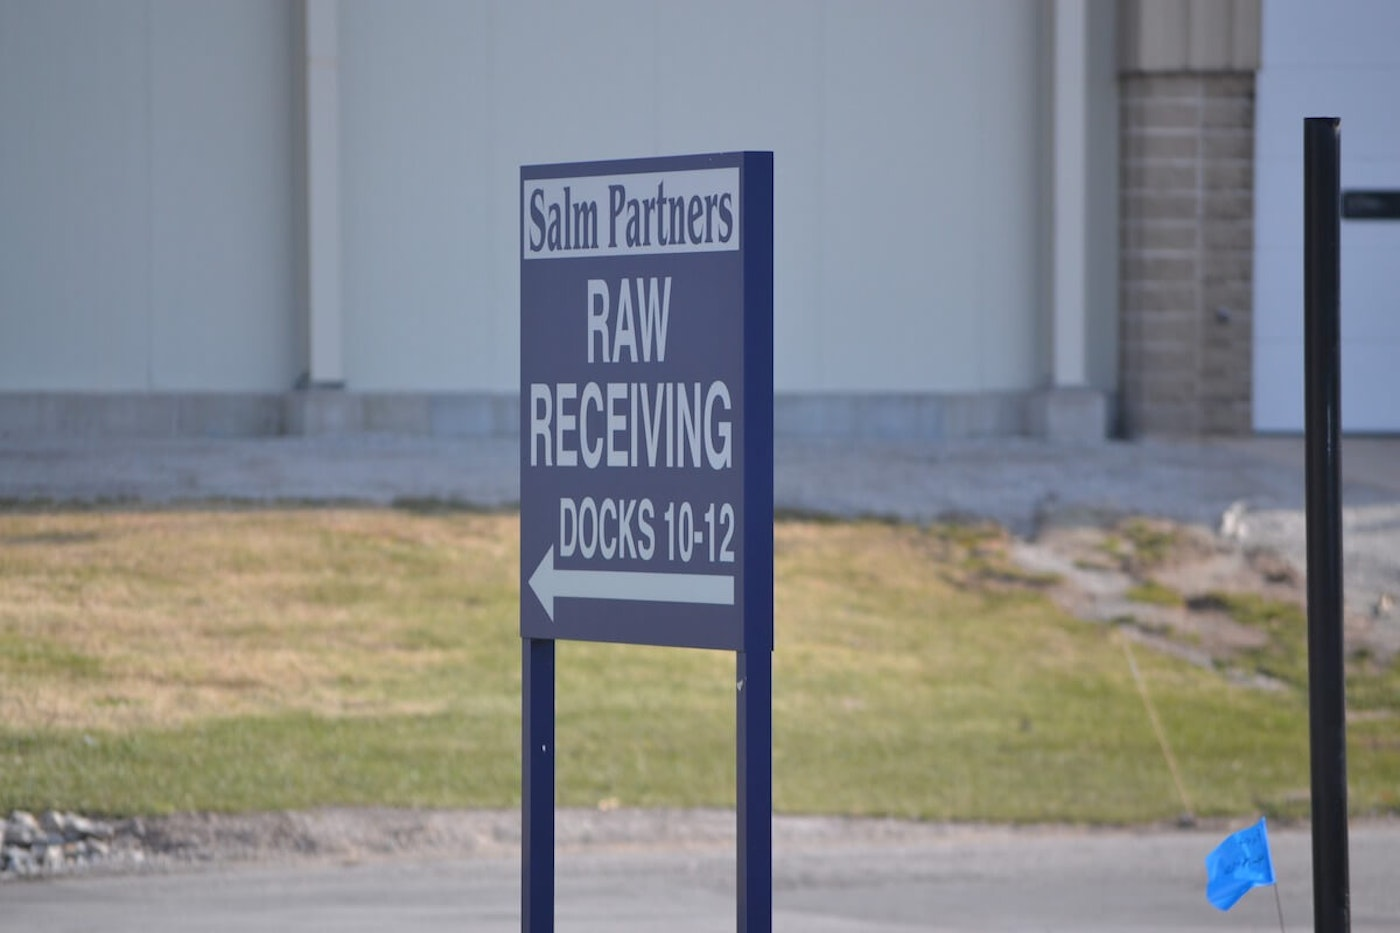 Salm Partners meatpacking plant in Brown County, WI, is one of three processing plants in the county with employees testing positive for COVID-19.